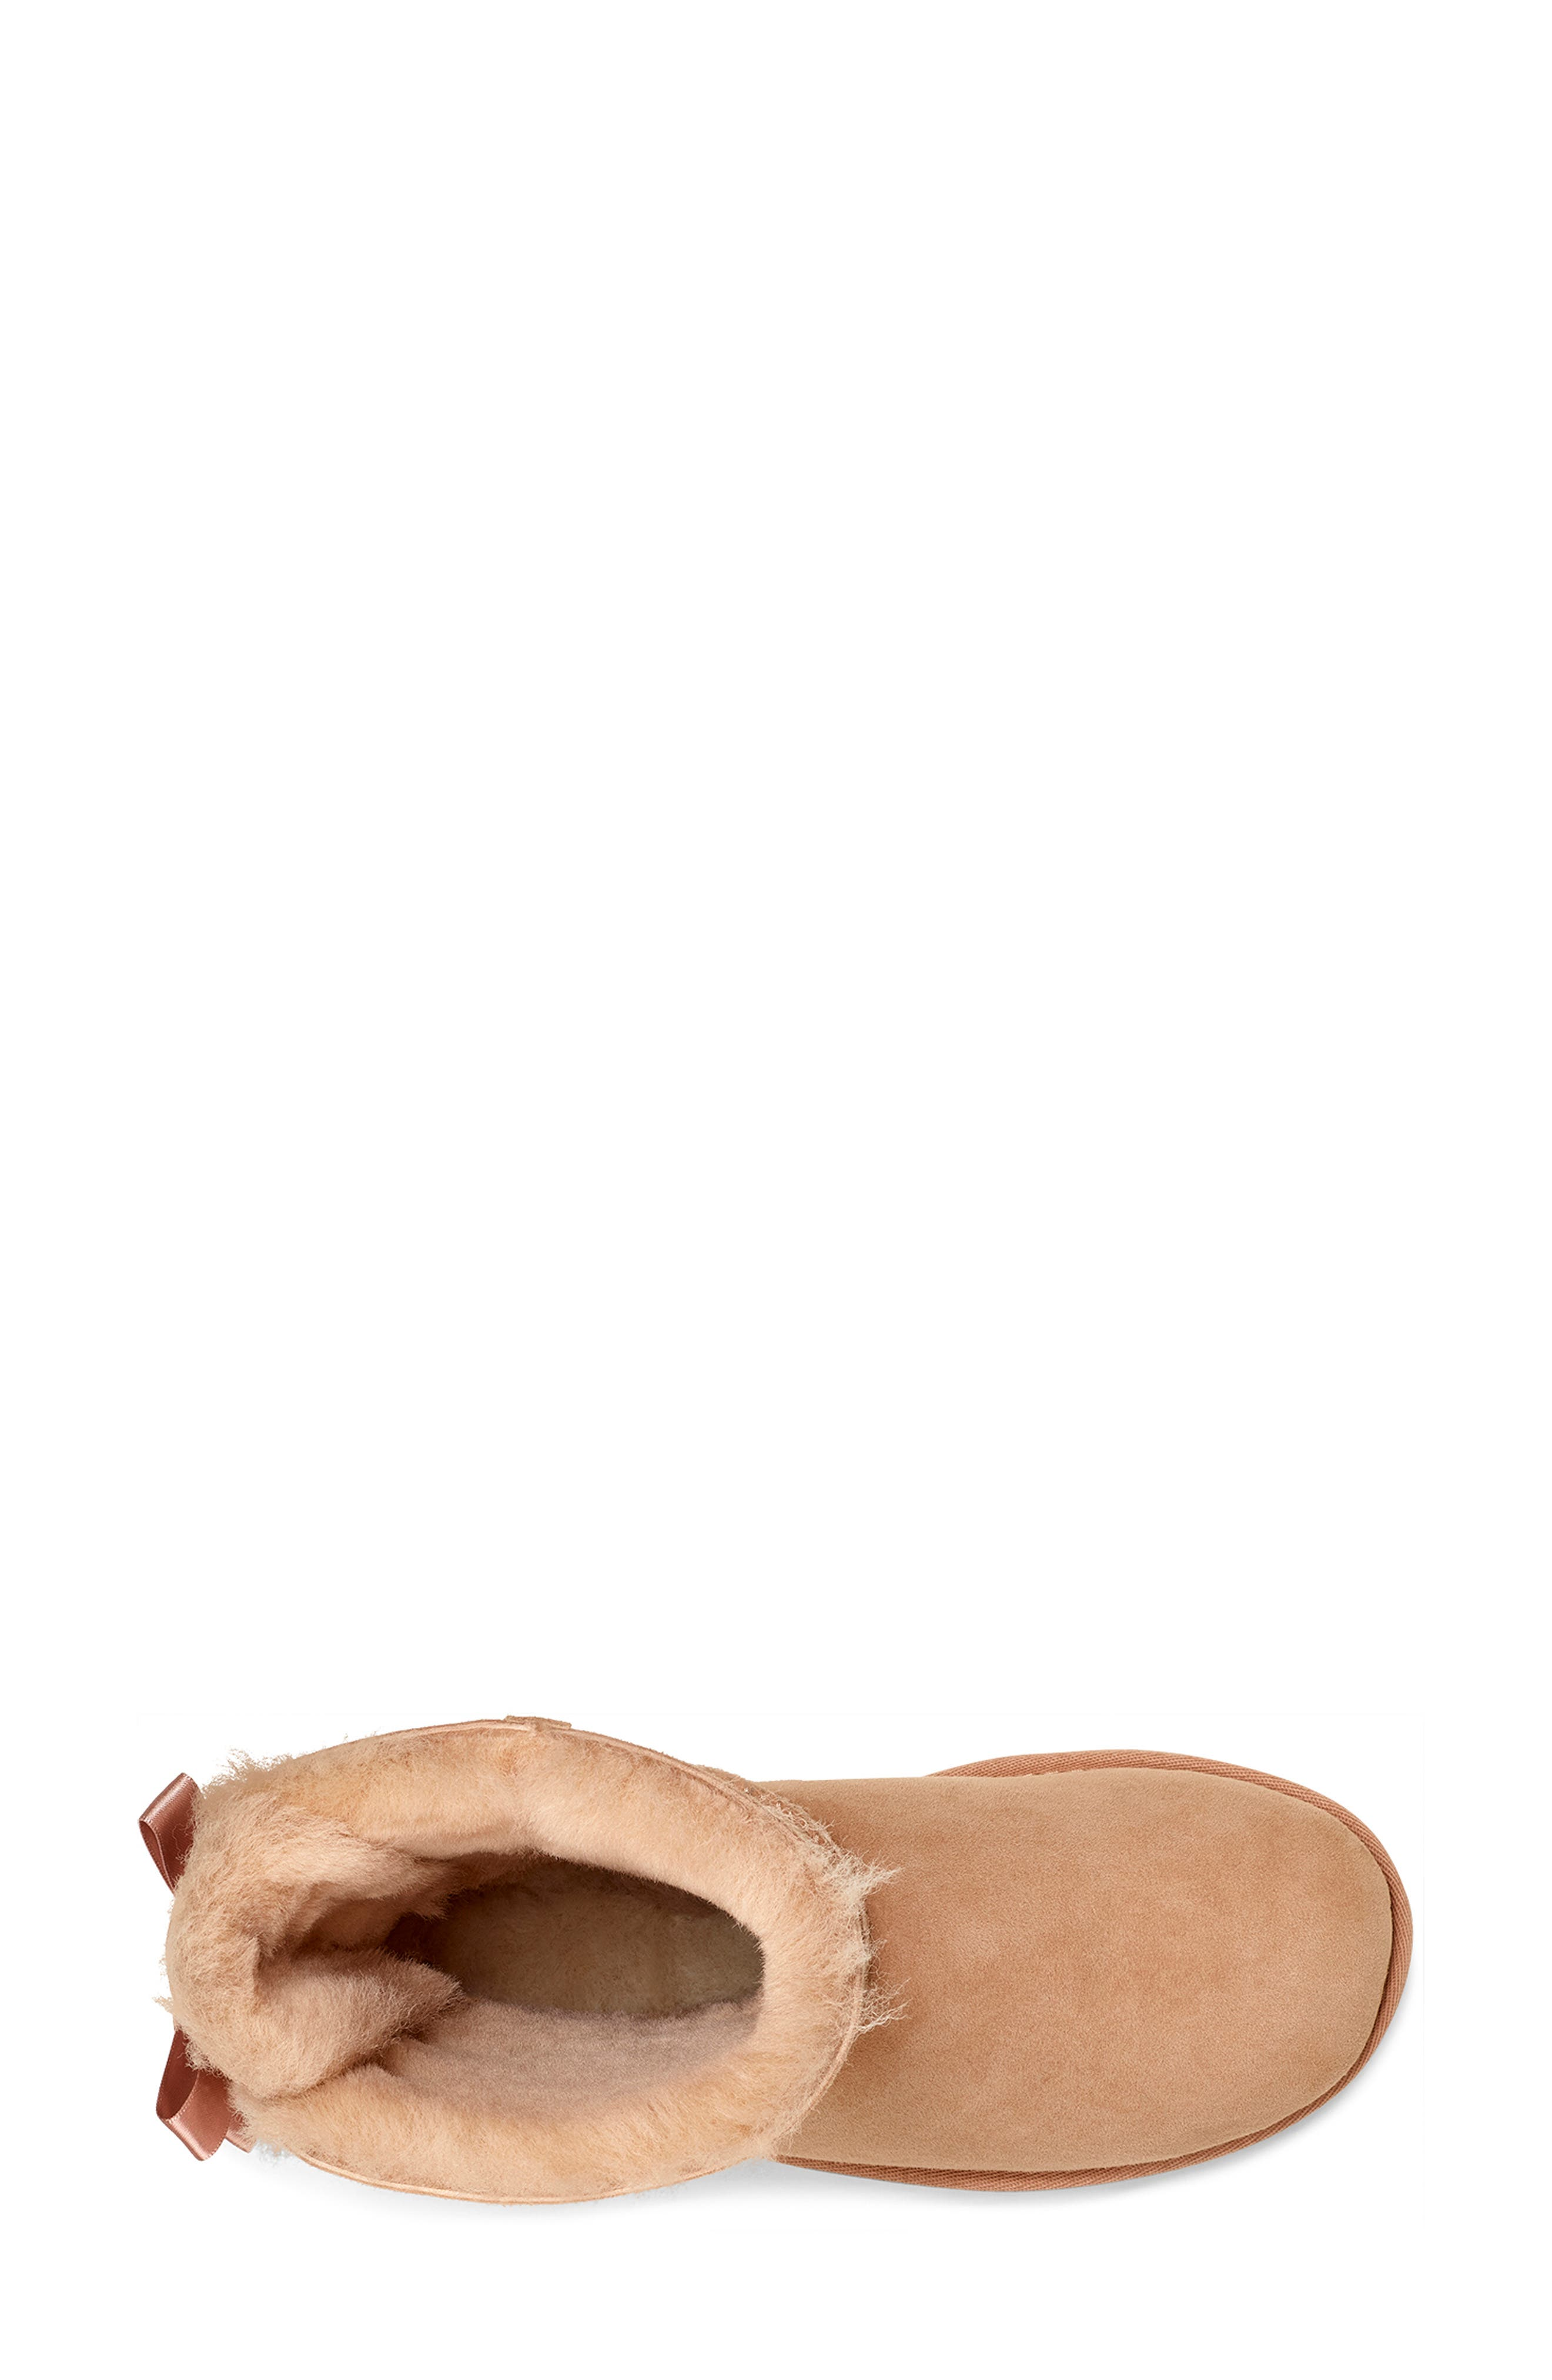 'Bailey Bow II' Boot,                             Alternate thumbnail 4, color,                             ARROYO SUEDE